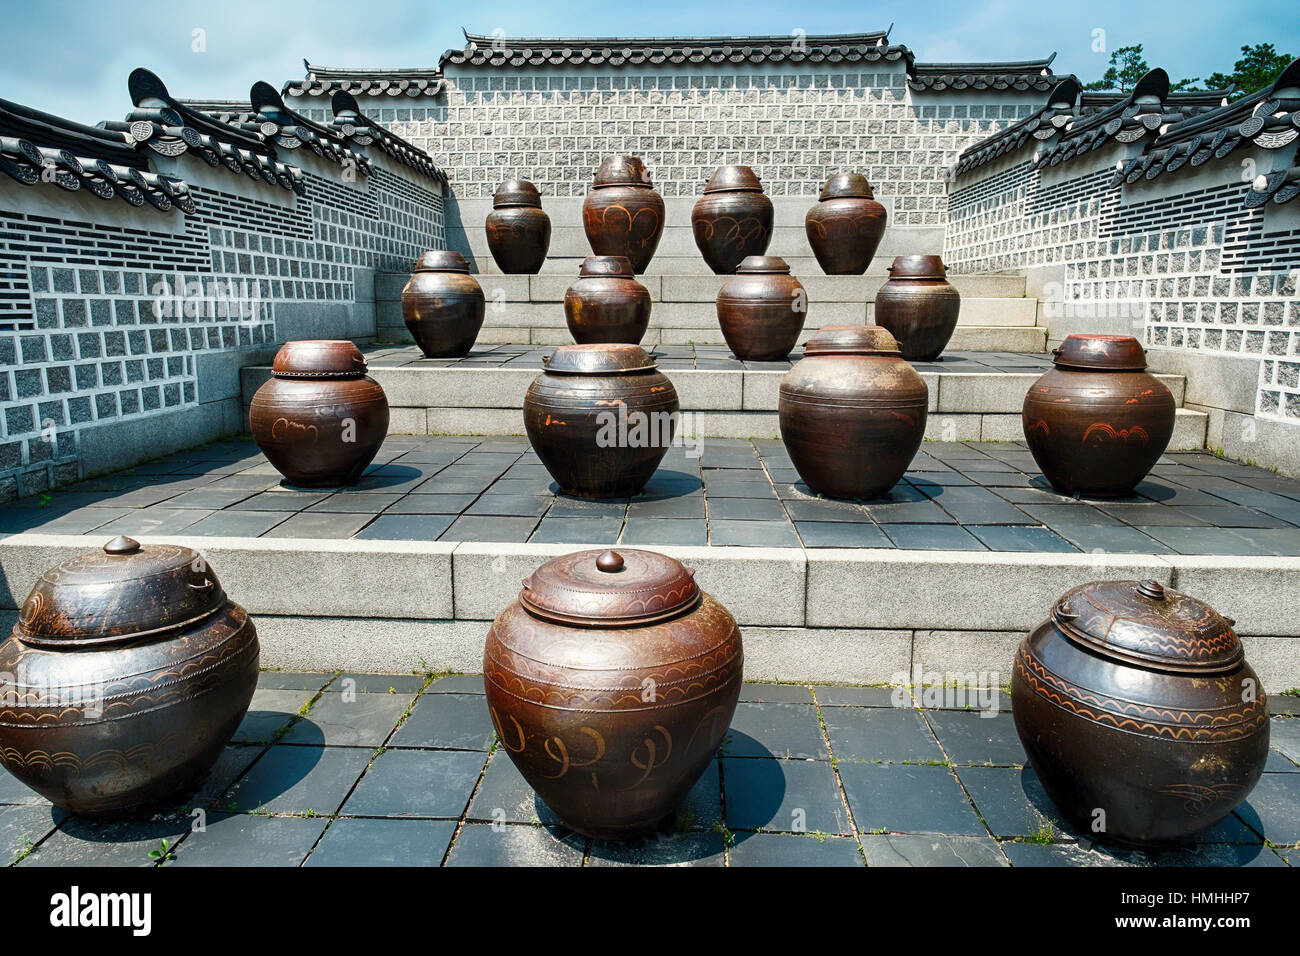 Large clay Fermentation Jars at Jango in Gyeongbokgung Palace - Stock Image